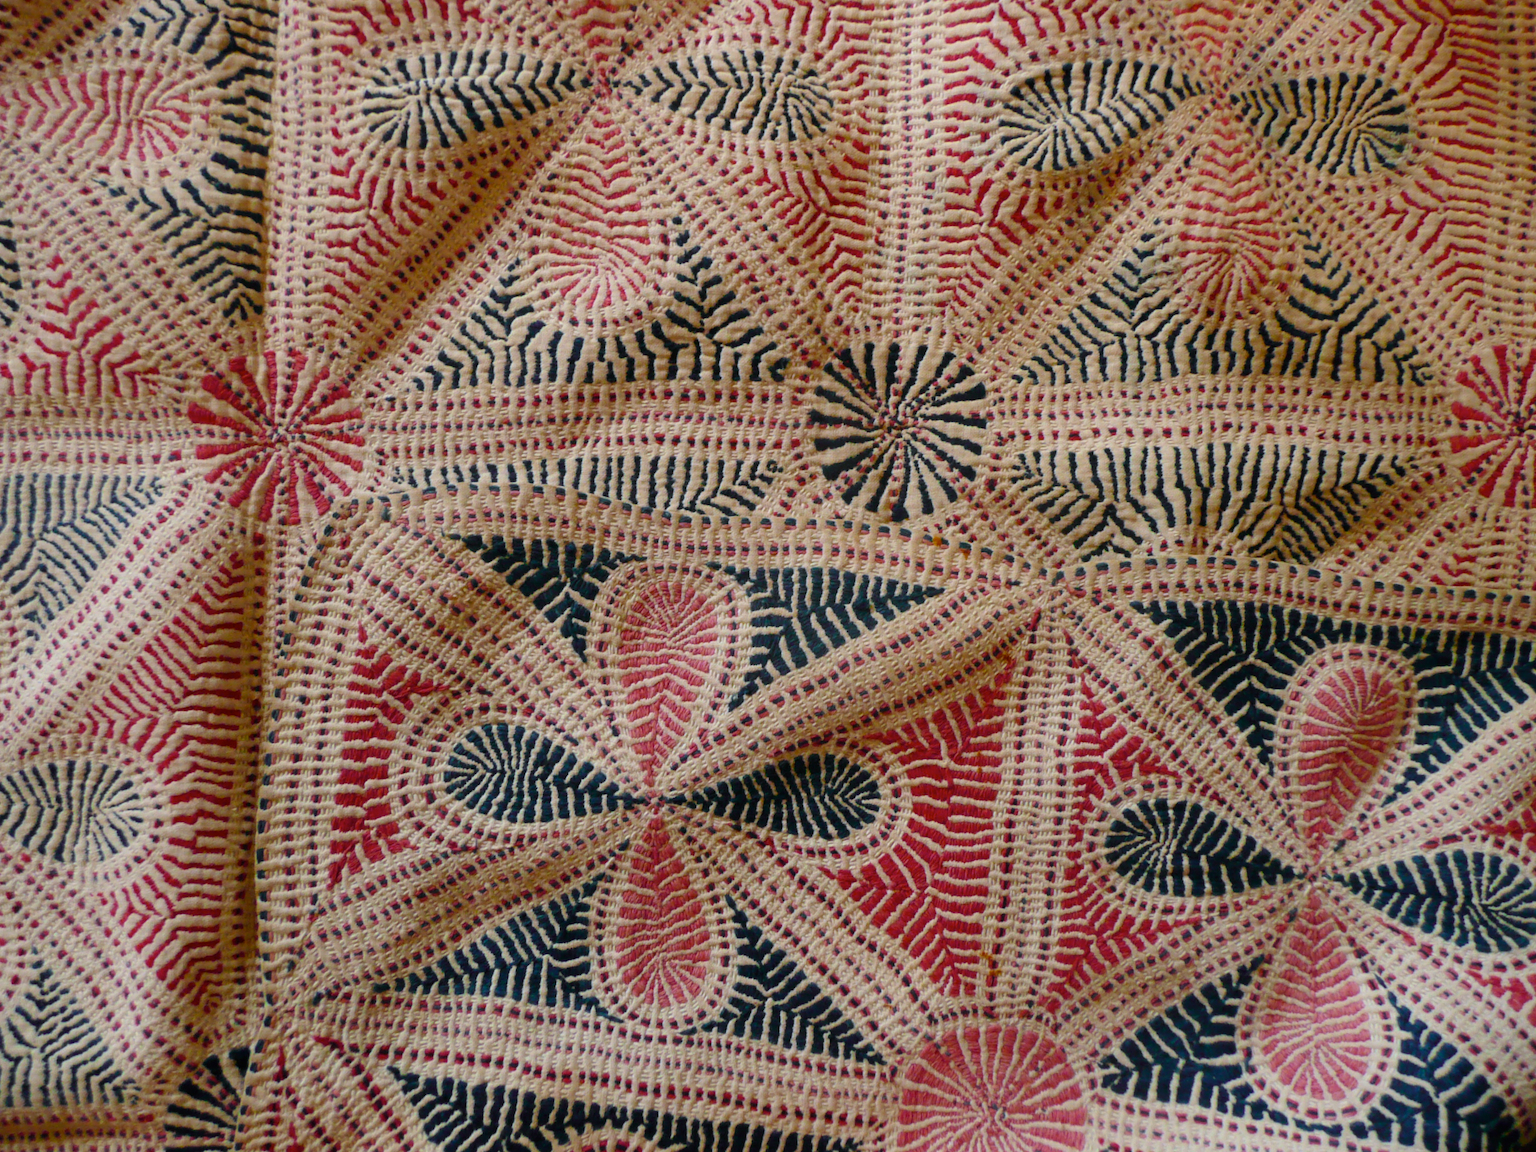 ART EMBROIDERY KANTHA